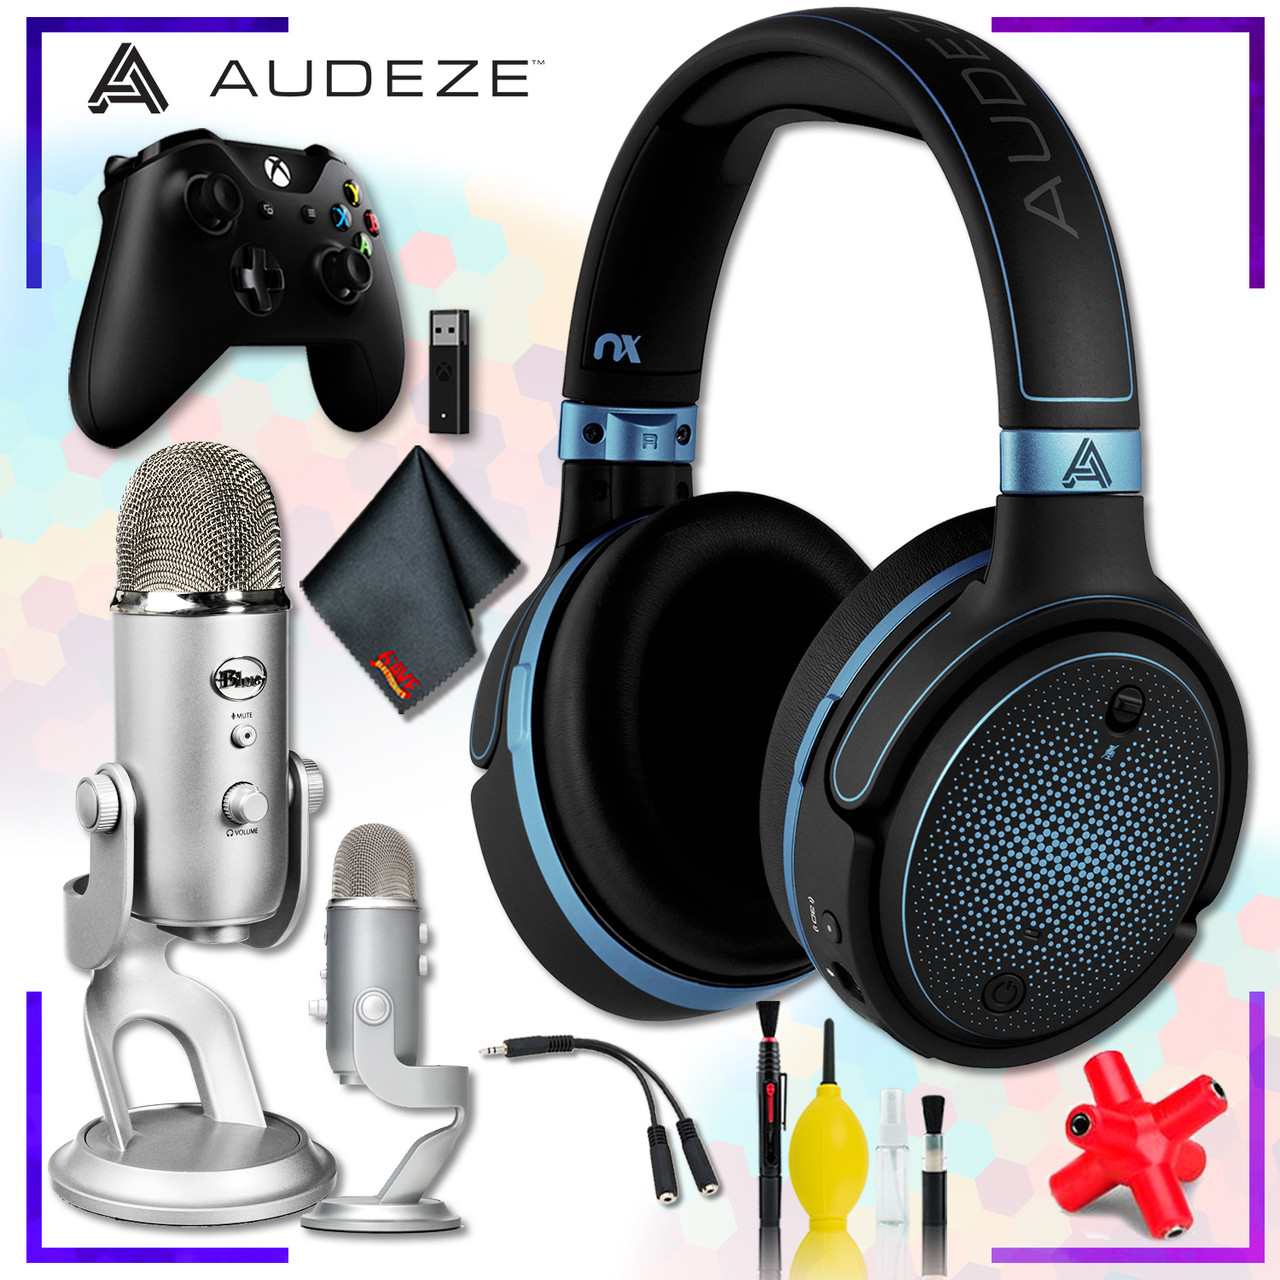 6acc2c36597 Audeze Mobius Planar Magnetic Gaming Headset (Blue) + Blue Yeti USB  Microphone (Silver) + Xbox Wireless Controller with adapter + Headphone and  Knuckel ...